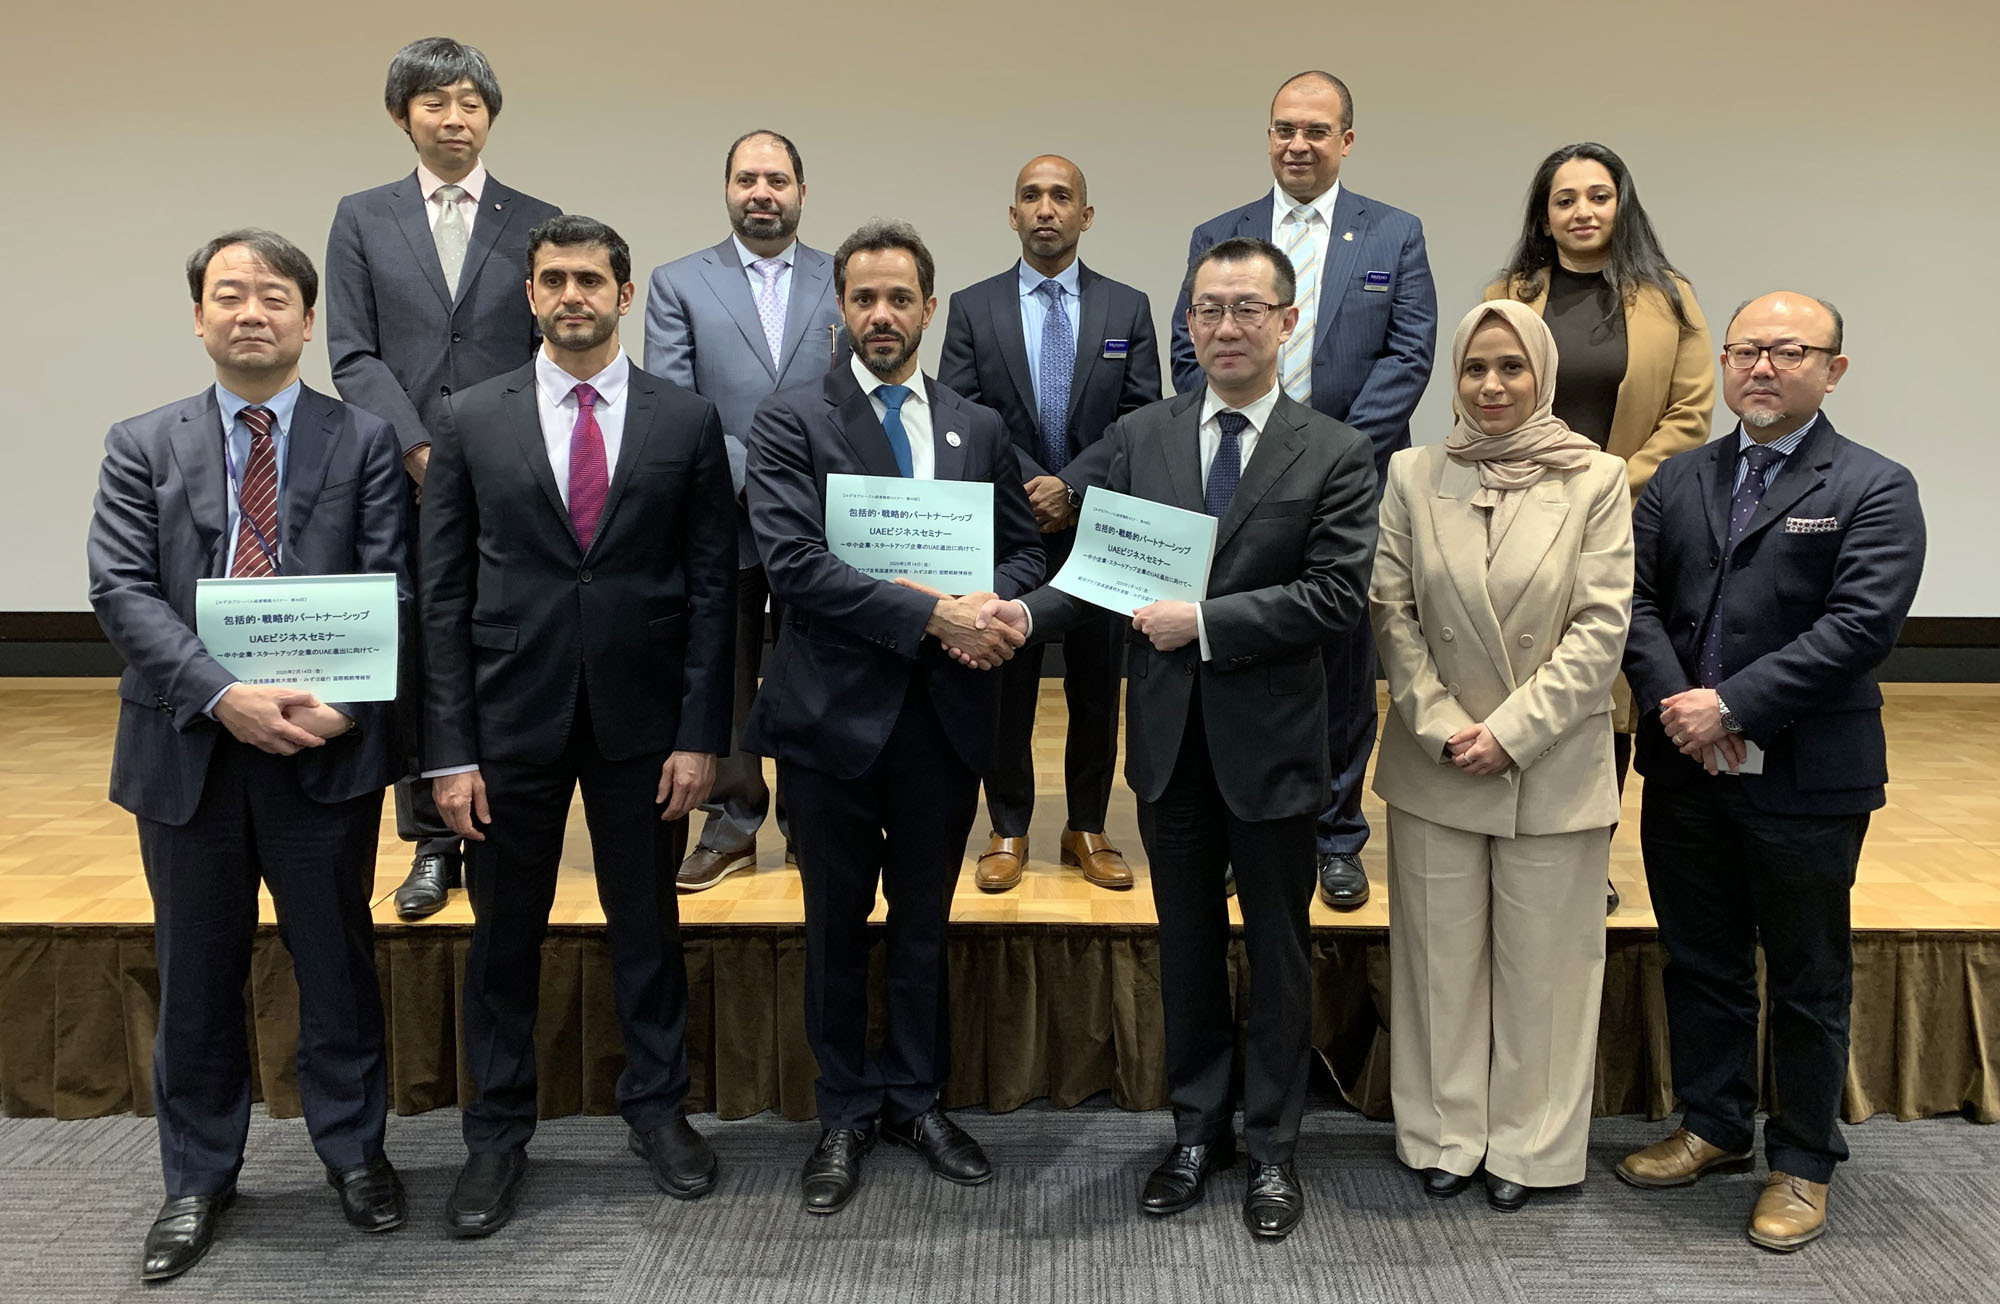 United Arab Emirates Ambassador Khaled Alameri (front row, third from left) shakes hands with Executive Officer and Global Head of the Corporate Division at Mizuho BankYasuhiko Hashimoto, and poses with Director of the Trade Promotion Department of the UAE's Ministry of Economy Mohammed Nasser Hamdan Al Zaabi (front row, second from left) and others during the UAE Business Seminar: Under the Framework of Comprehensive Strategic Partnership (CSP) event, held on Feb. 14, in Tokyo. The event was co-hosted by the UAE Embassy in Japan and Mizuho Bank to present new partnership and business opportunities in various fields between the UAE and Japan under the new CSP joint cooperation strategy. | PHOTO COURTESY OF THE UAE EMBASSY